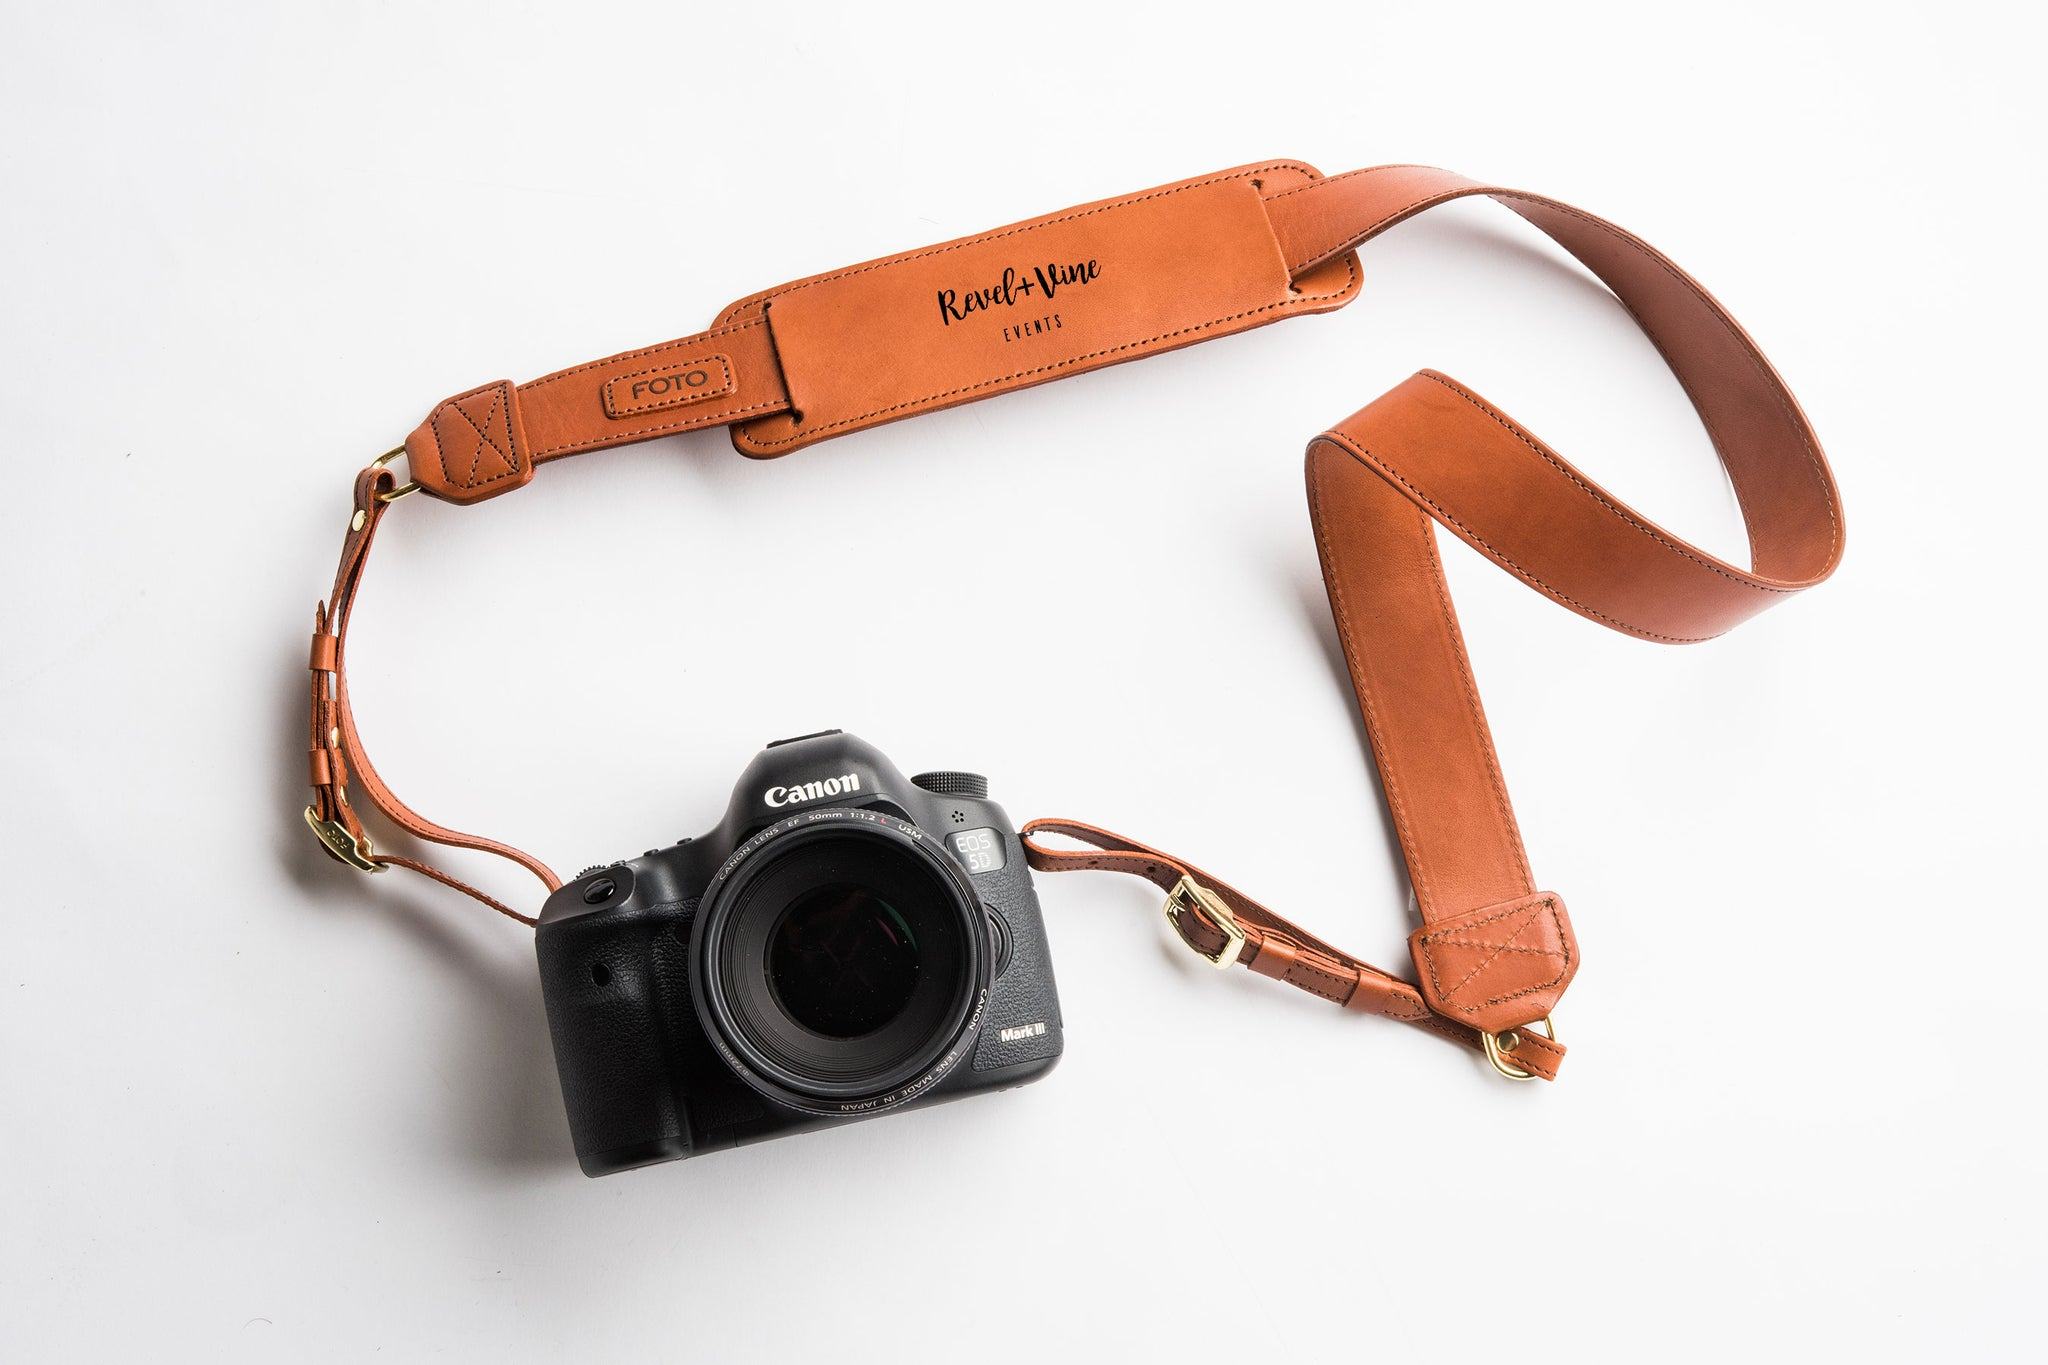 Learn how to design your own logo and visual brand for your new photography business with these simple tips from Fotostrap